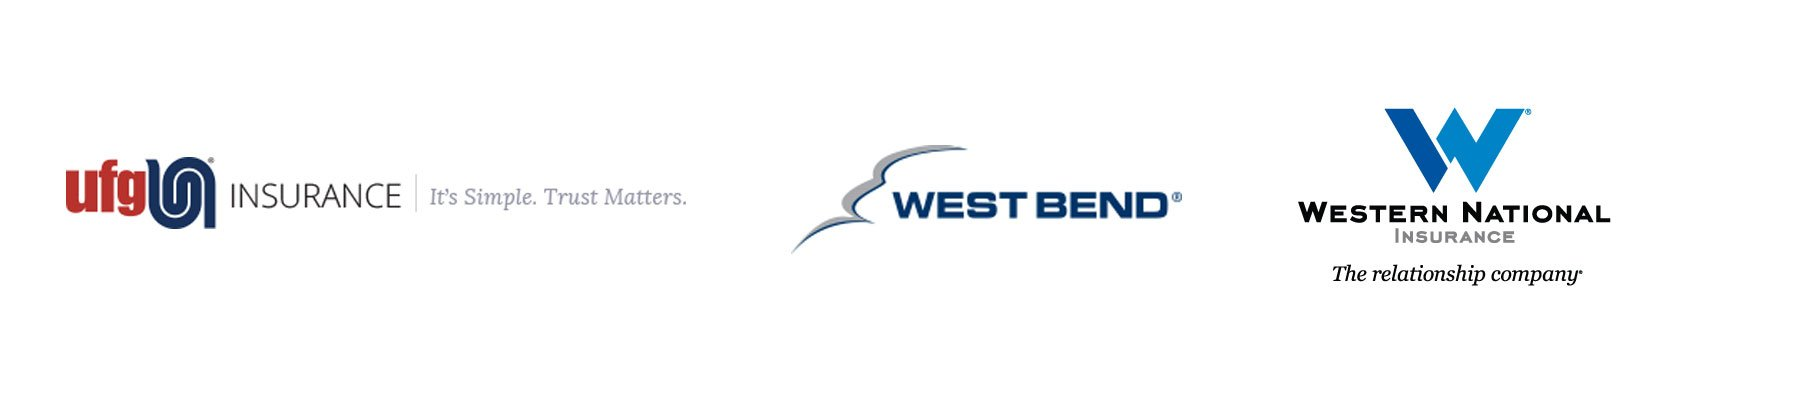 UFG Insurance Logo, West Bend Logo, Western National Insurance Logo